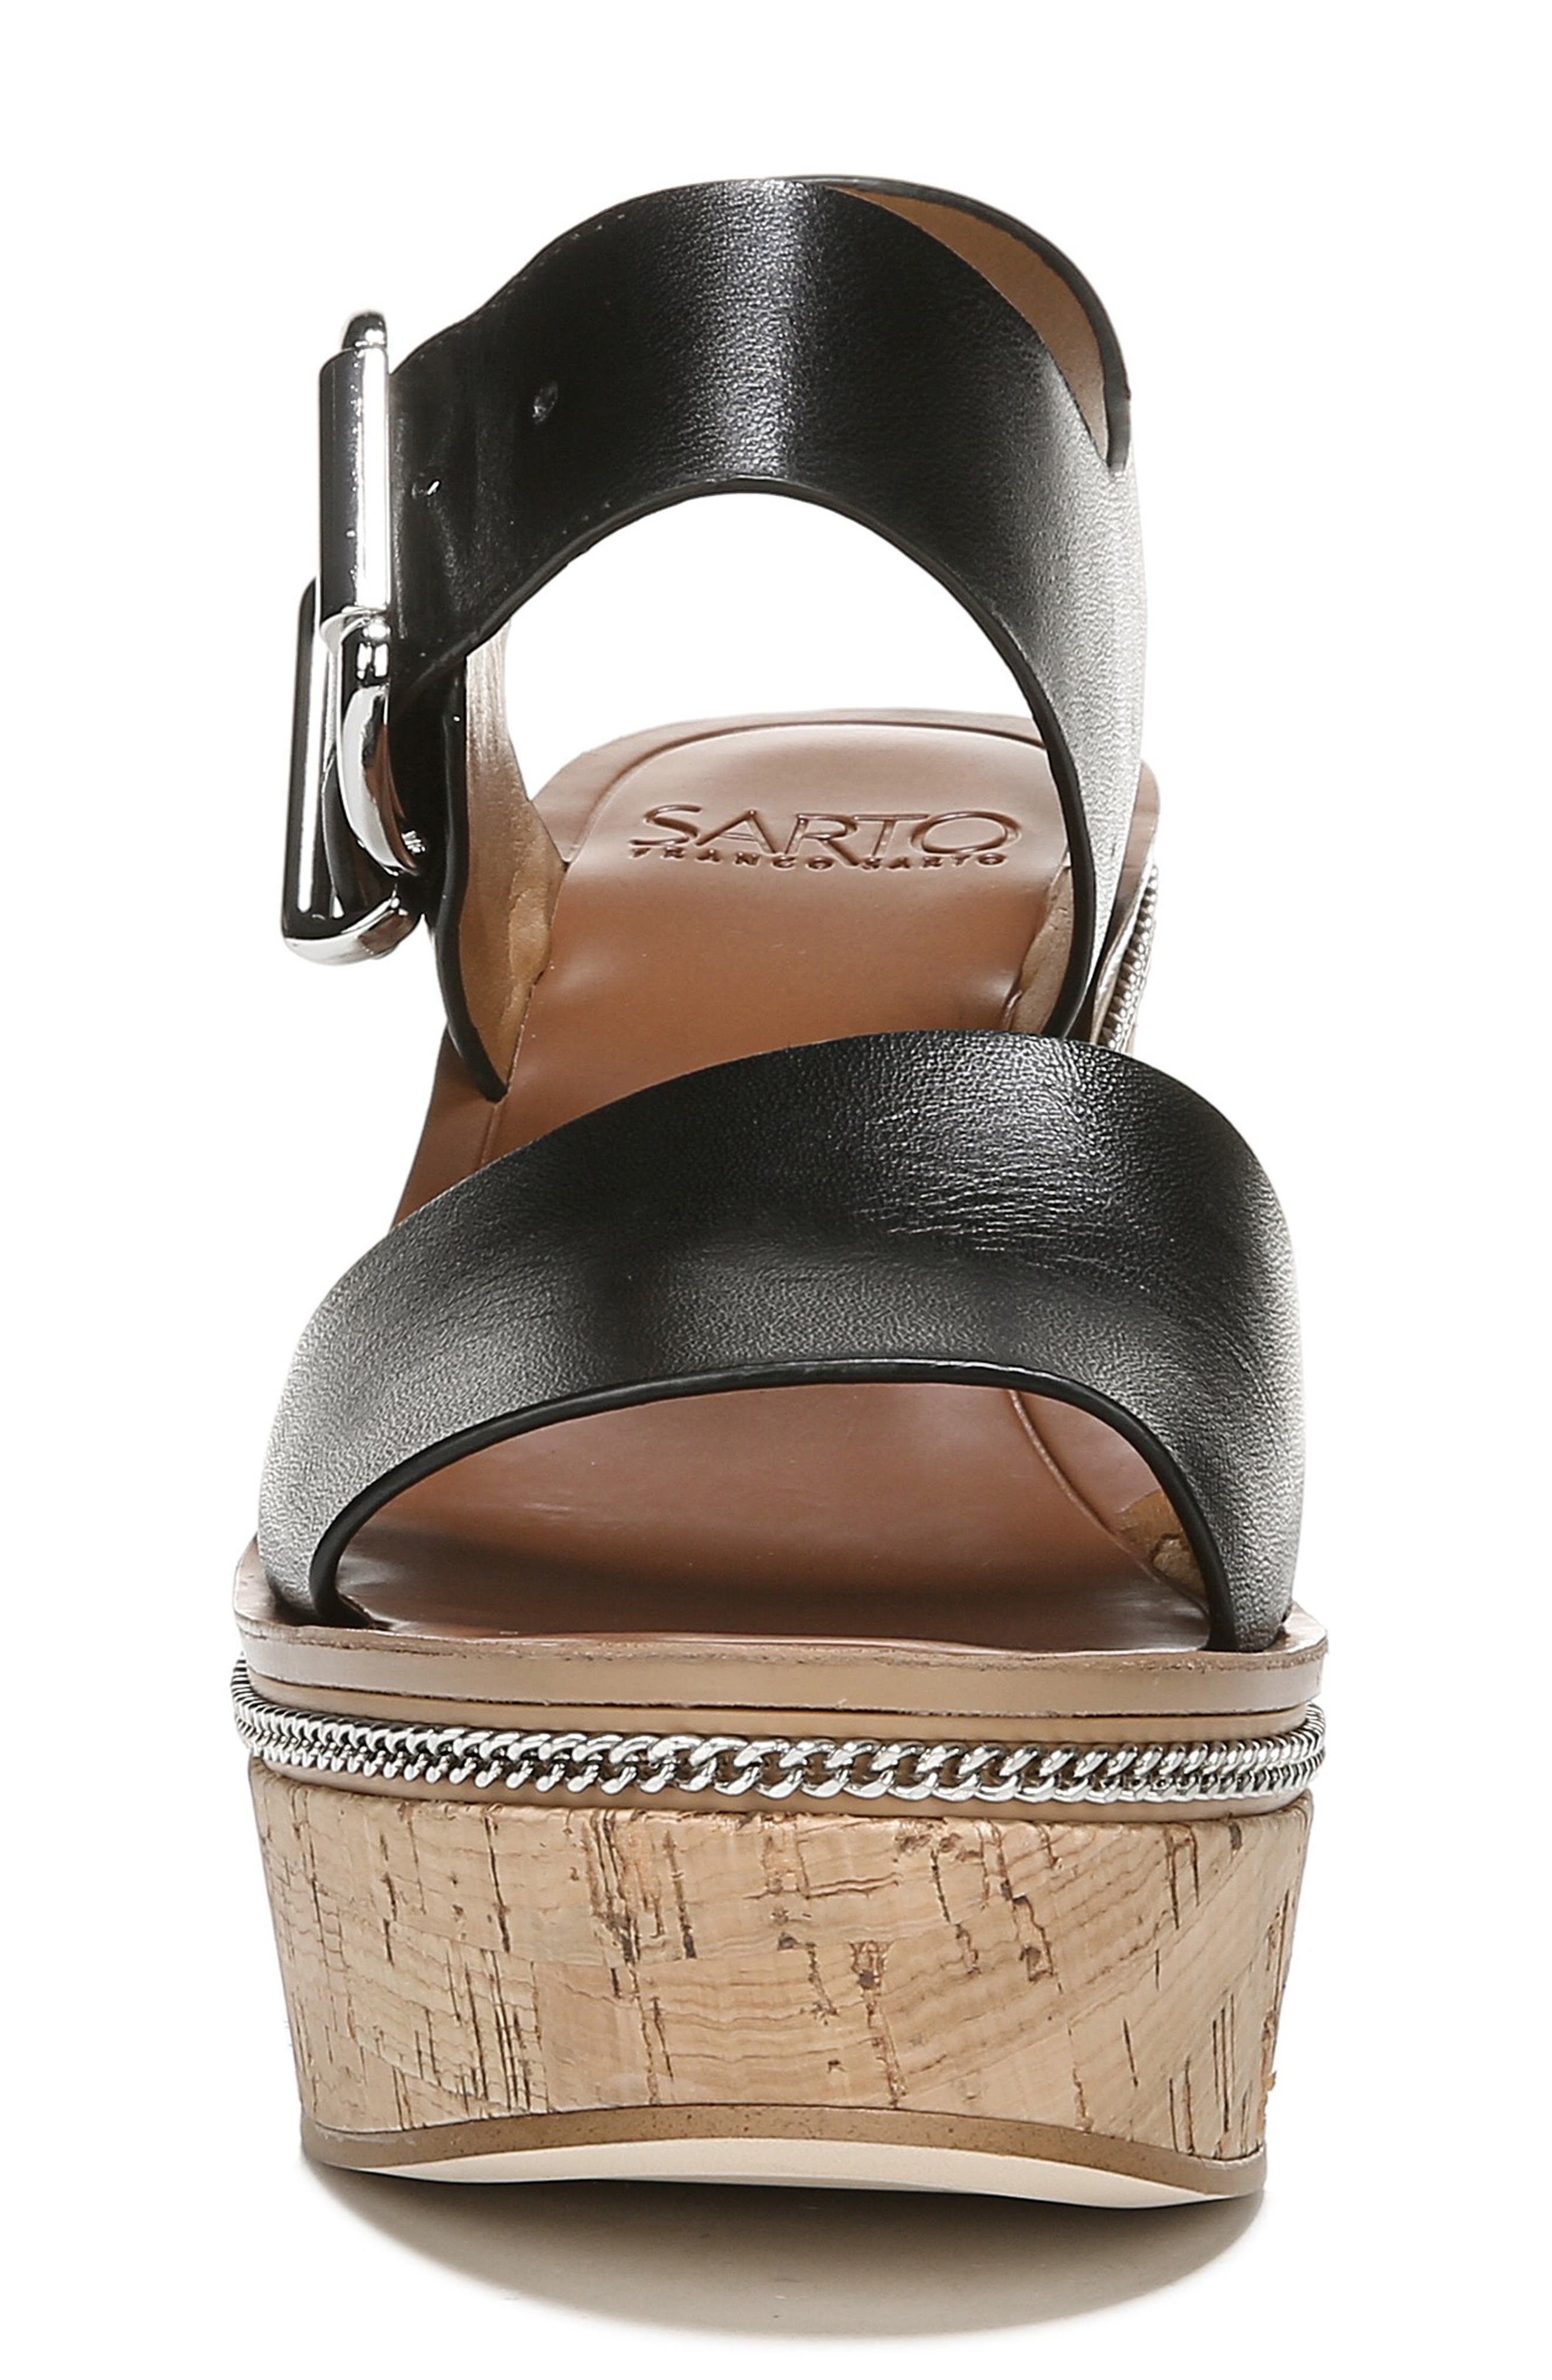 SARTO BY FRANCO SARTO, Polly Wedge Slingback Sandal, Alternate thumbnail 4, color, BLACK LEATHER